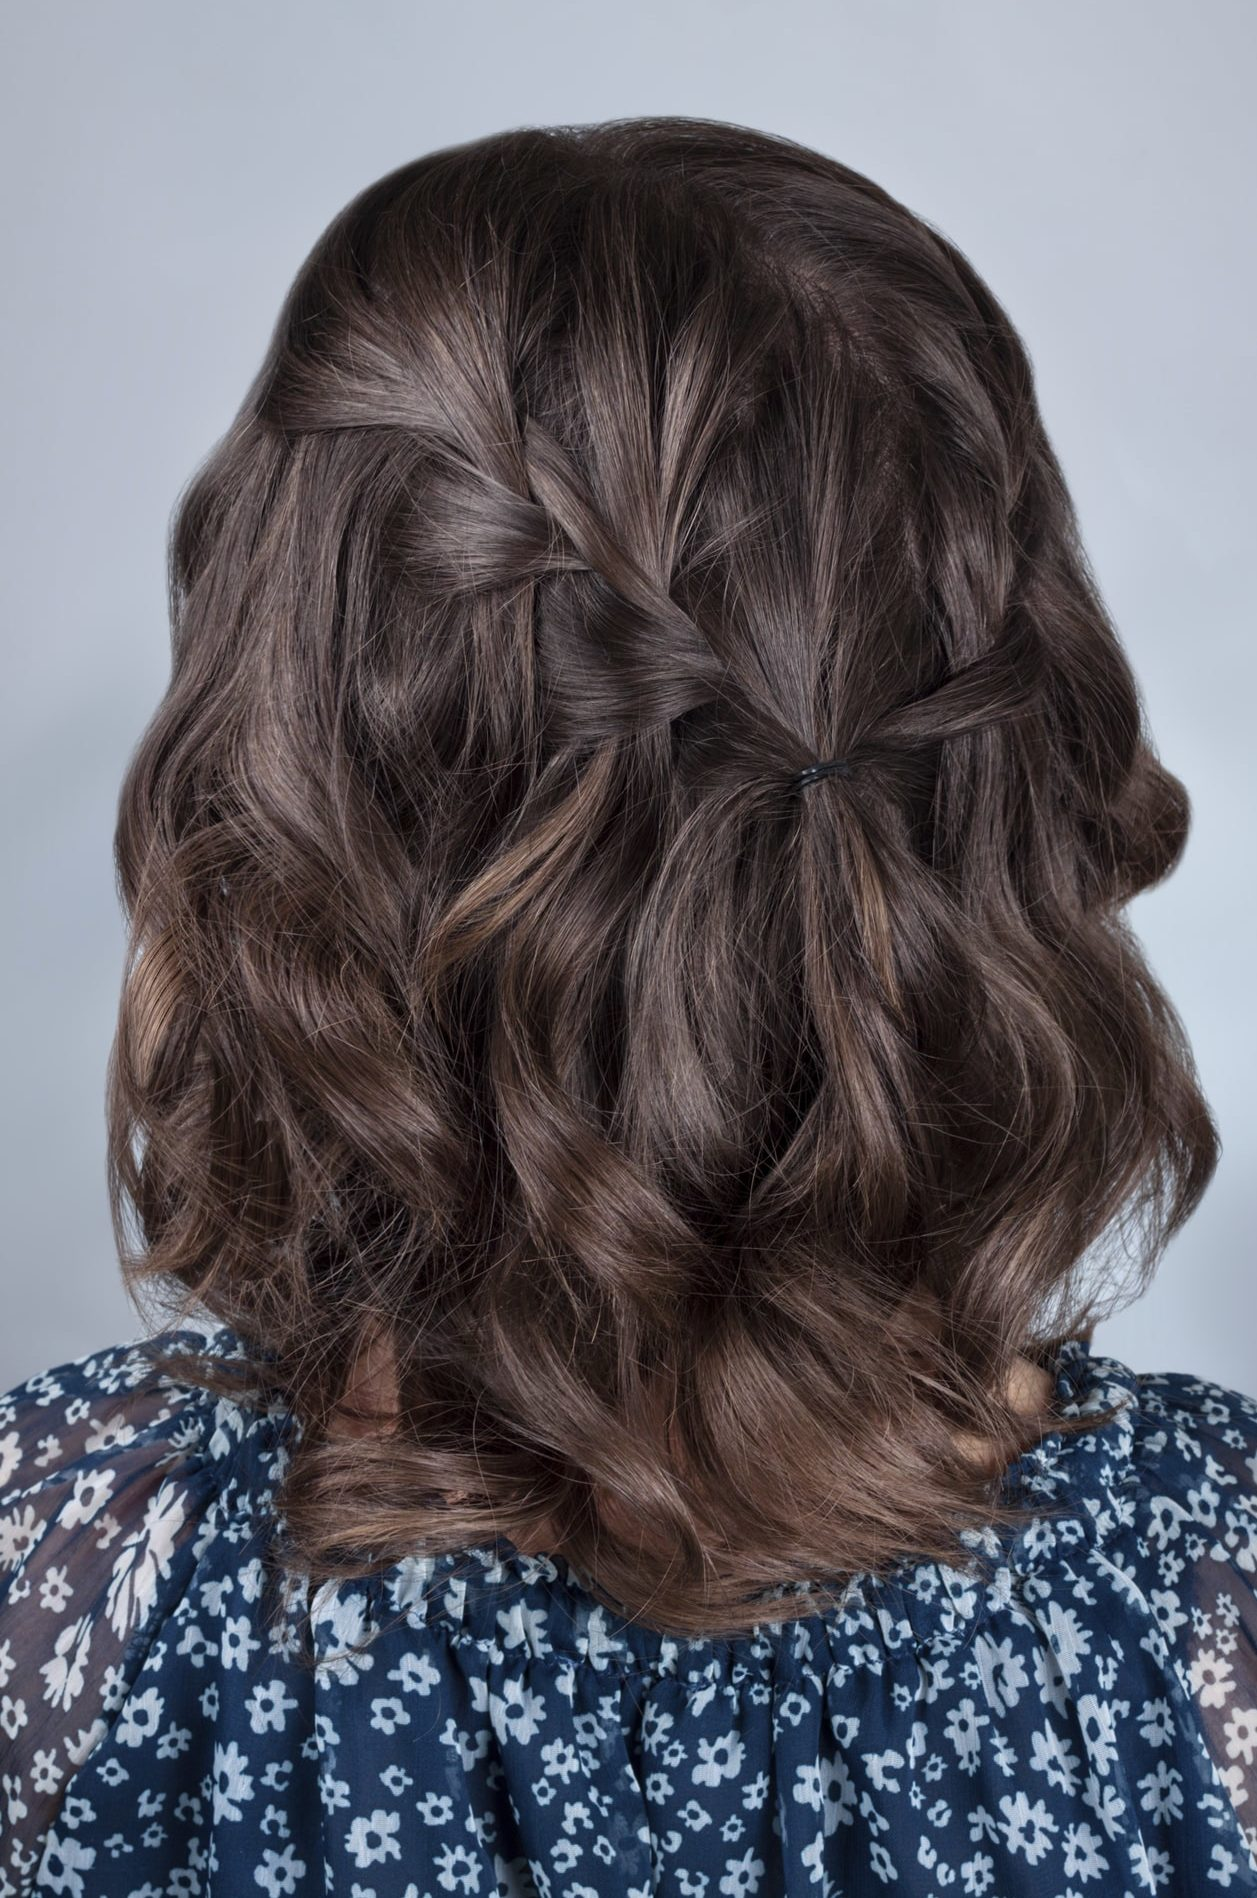 5 Easy curly hairstyles you can do everyday